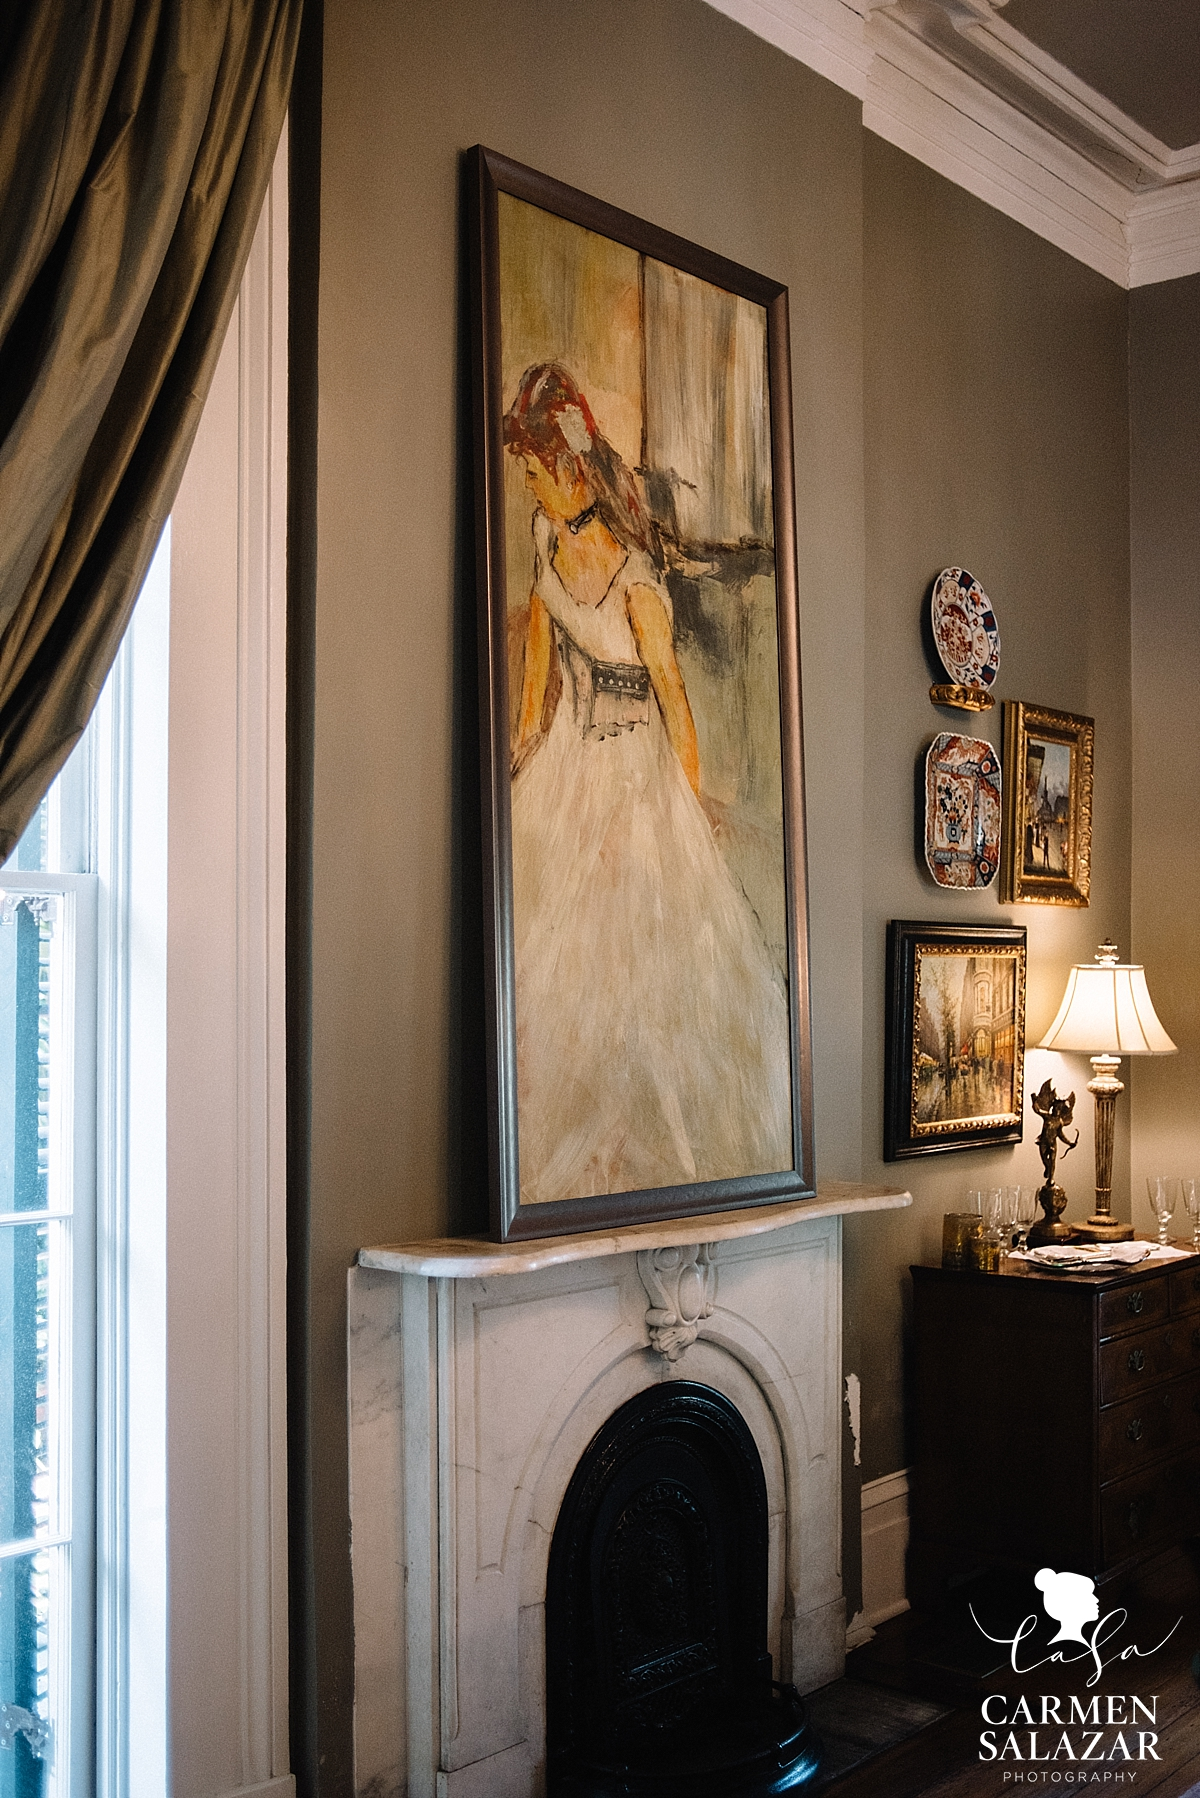 French quarter interior design by Carmen Salazar